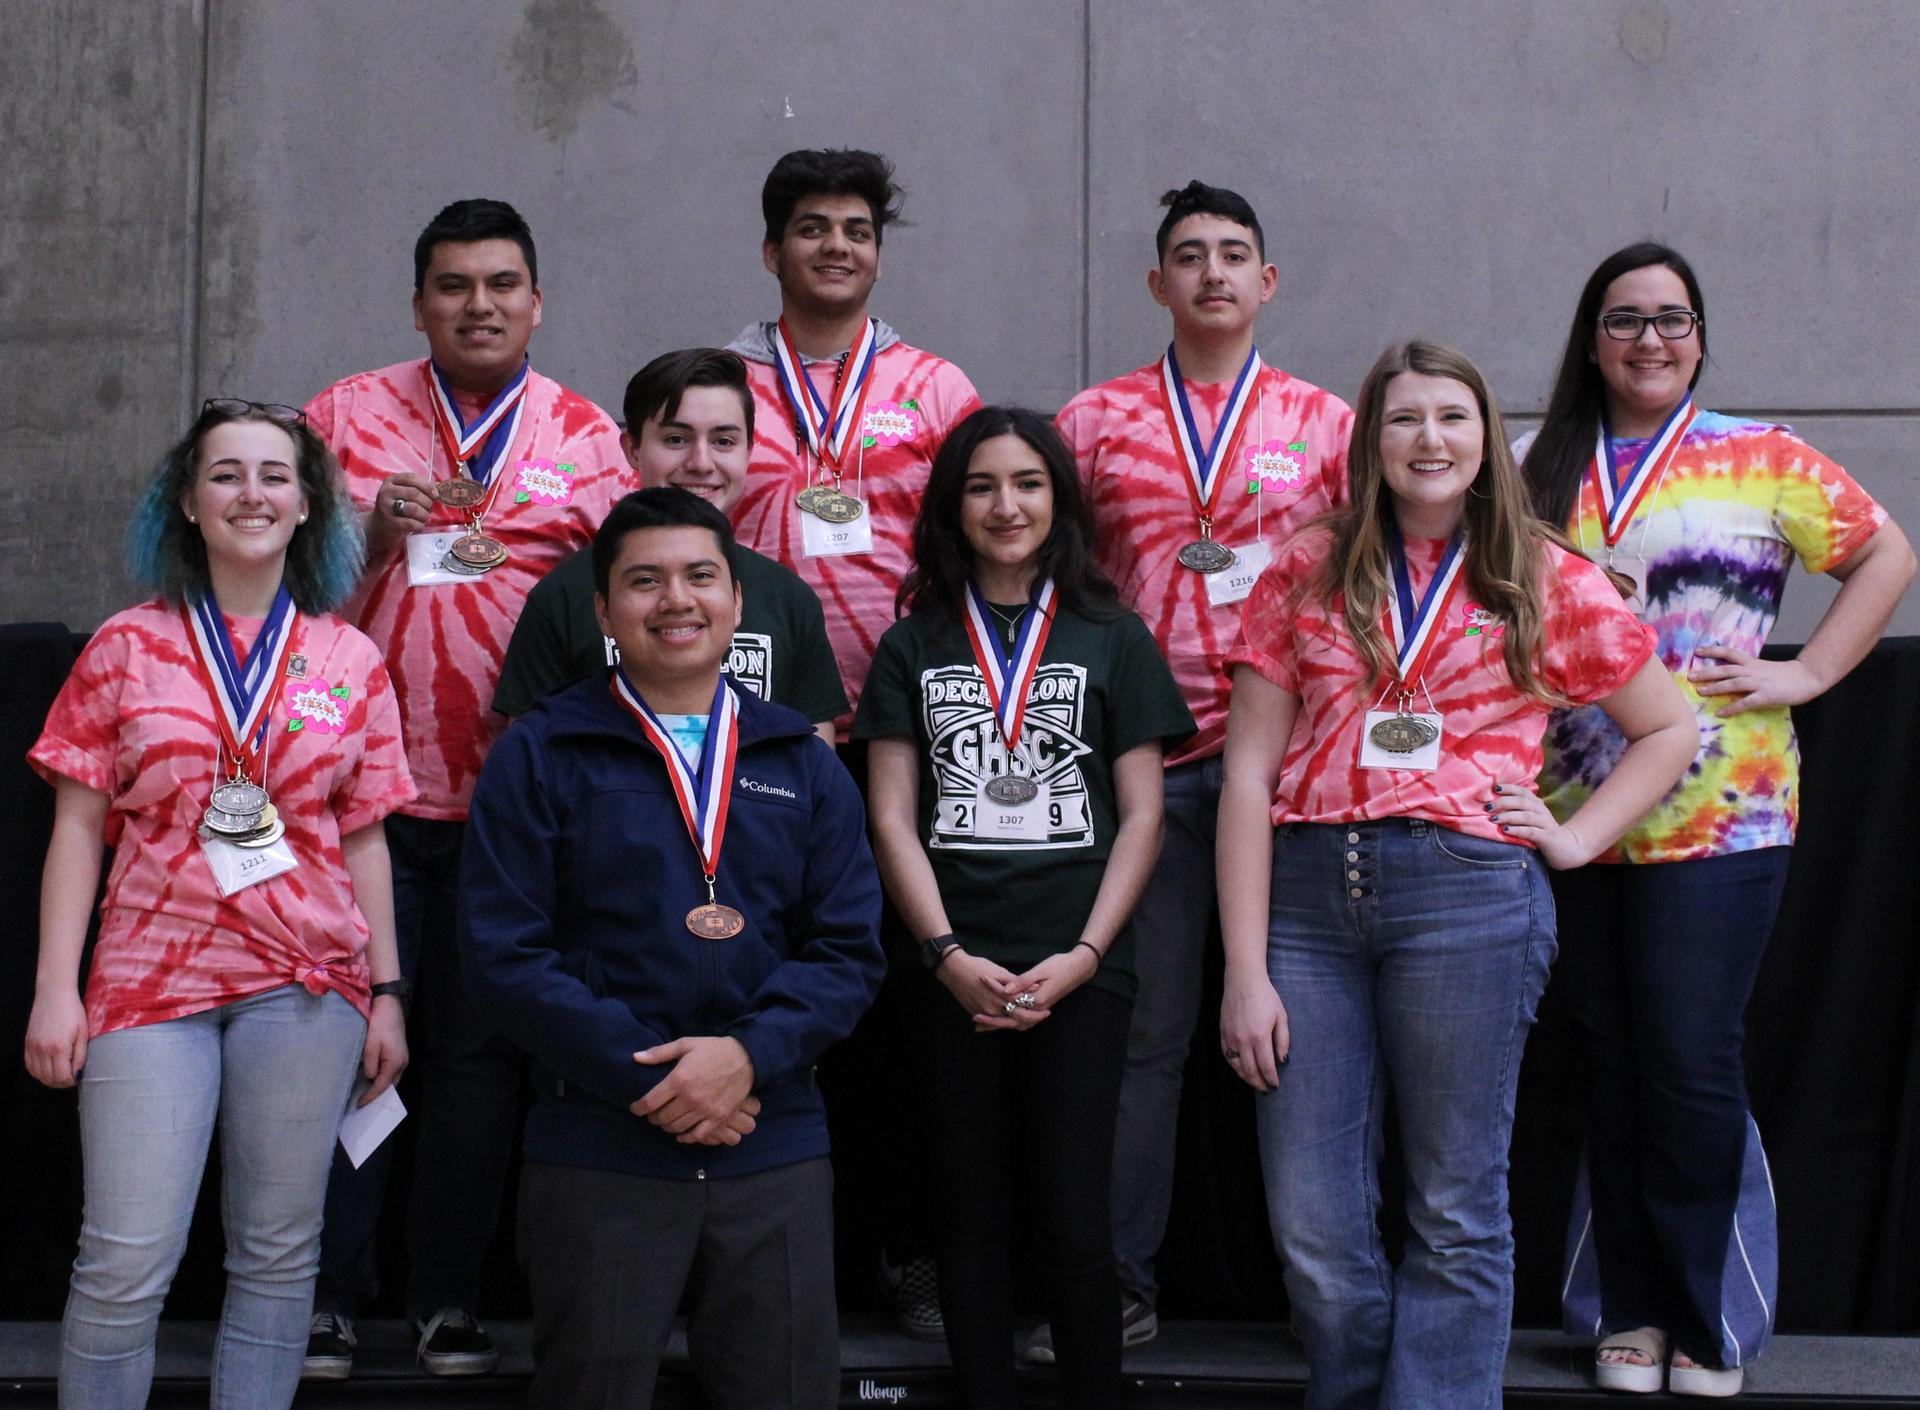 Speech Medalists: Madison Ingraham, Honors Silver; Alan Martinez, Scholastic Bronze; Gurpreet Dhesi, Varsity Gold; Geovanni Vera, Scholastic Silver; Kylie Farmer, Honors Gold